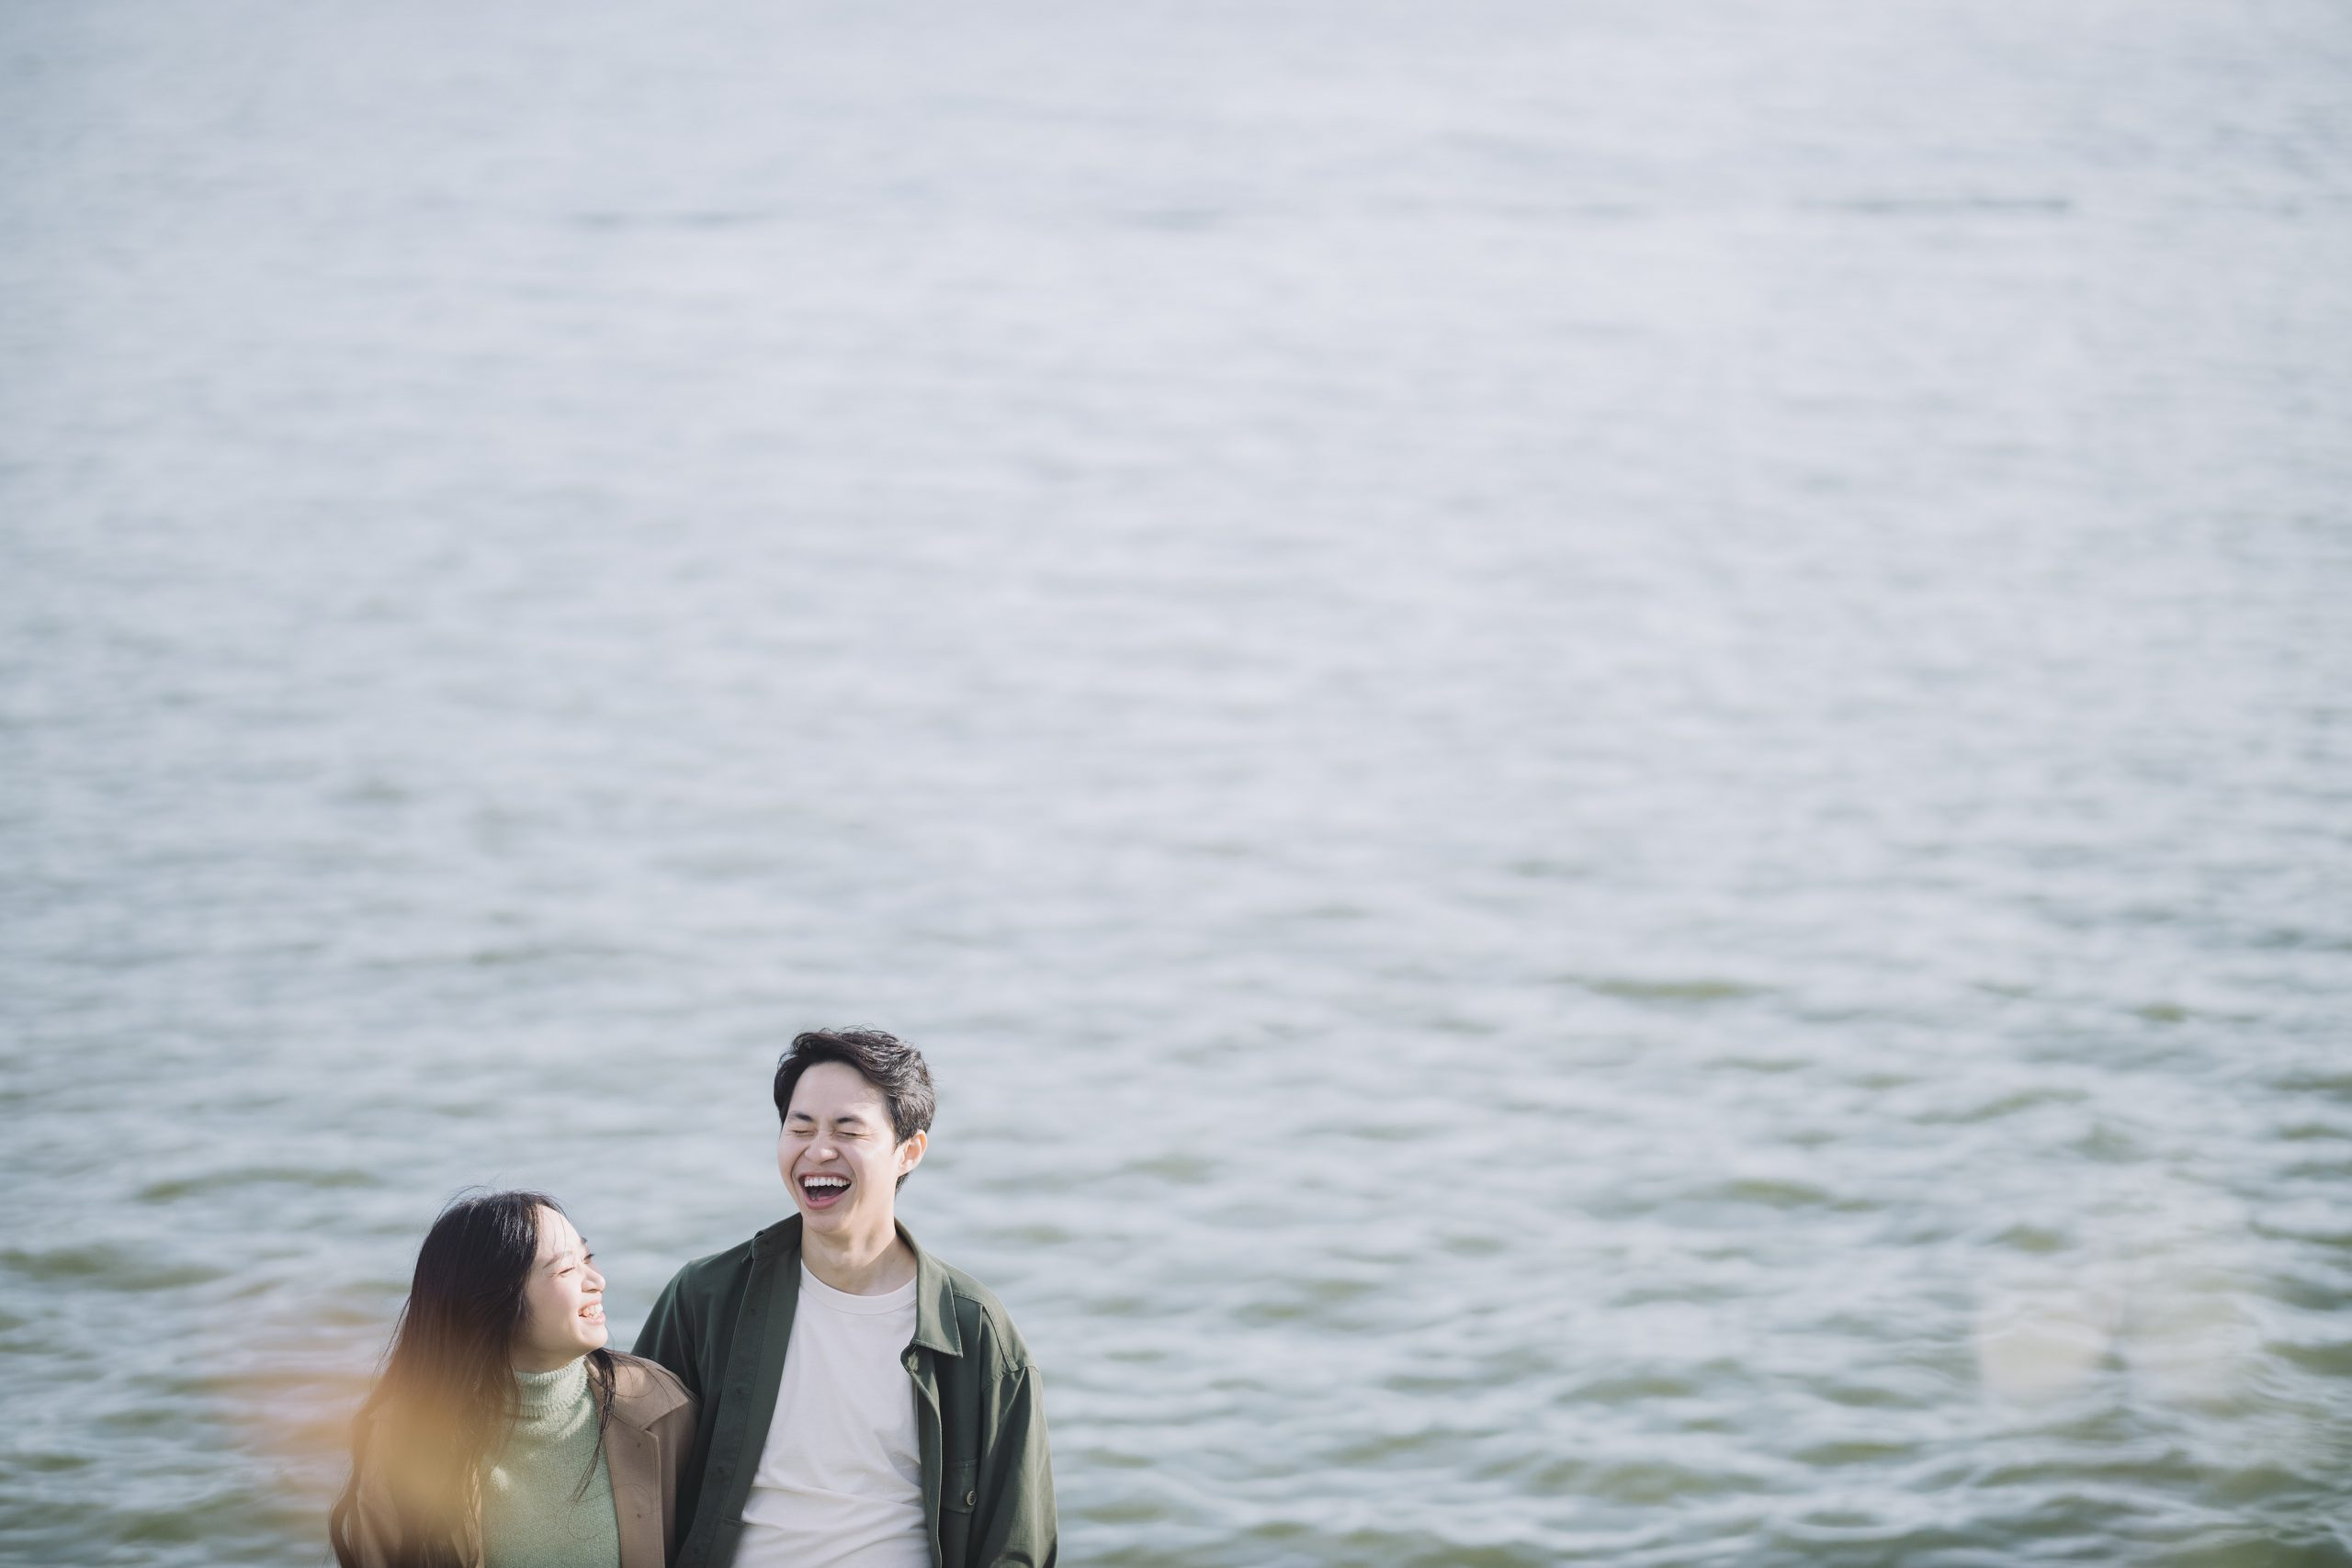 man and woman smiling beside body of water during daytime